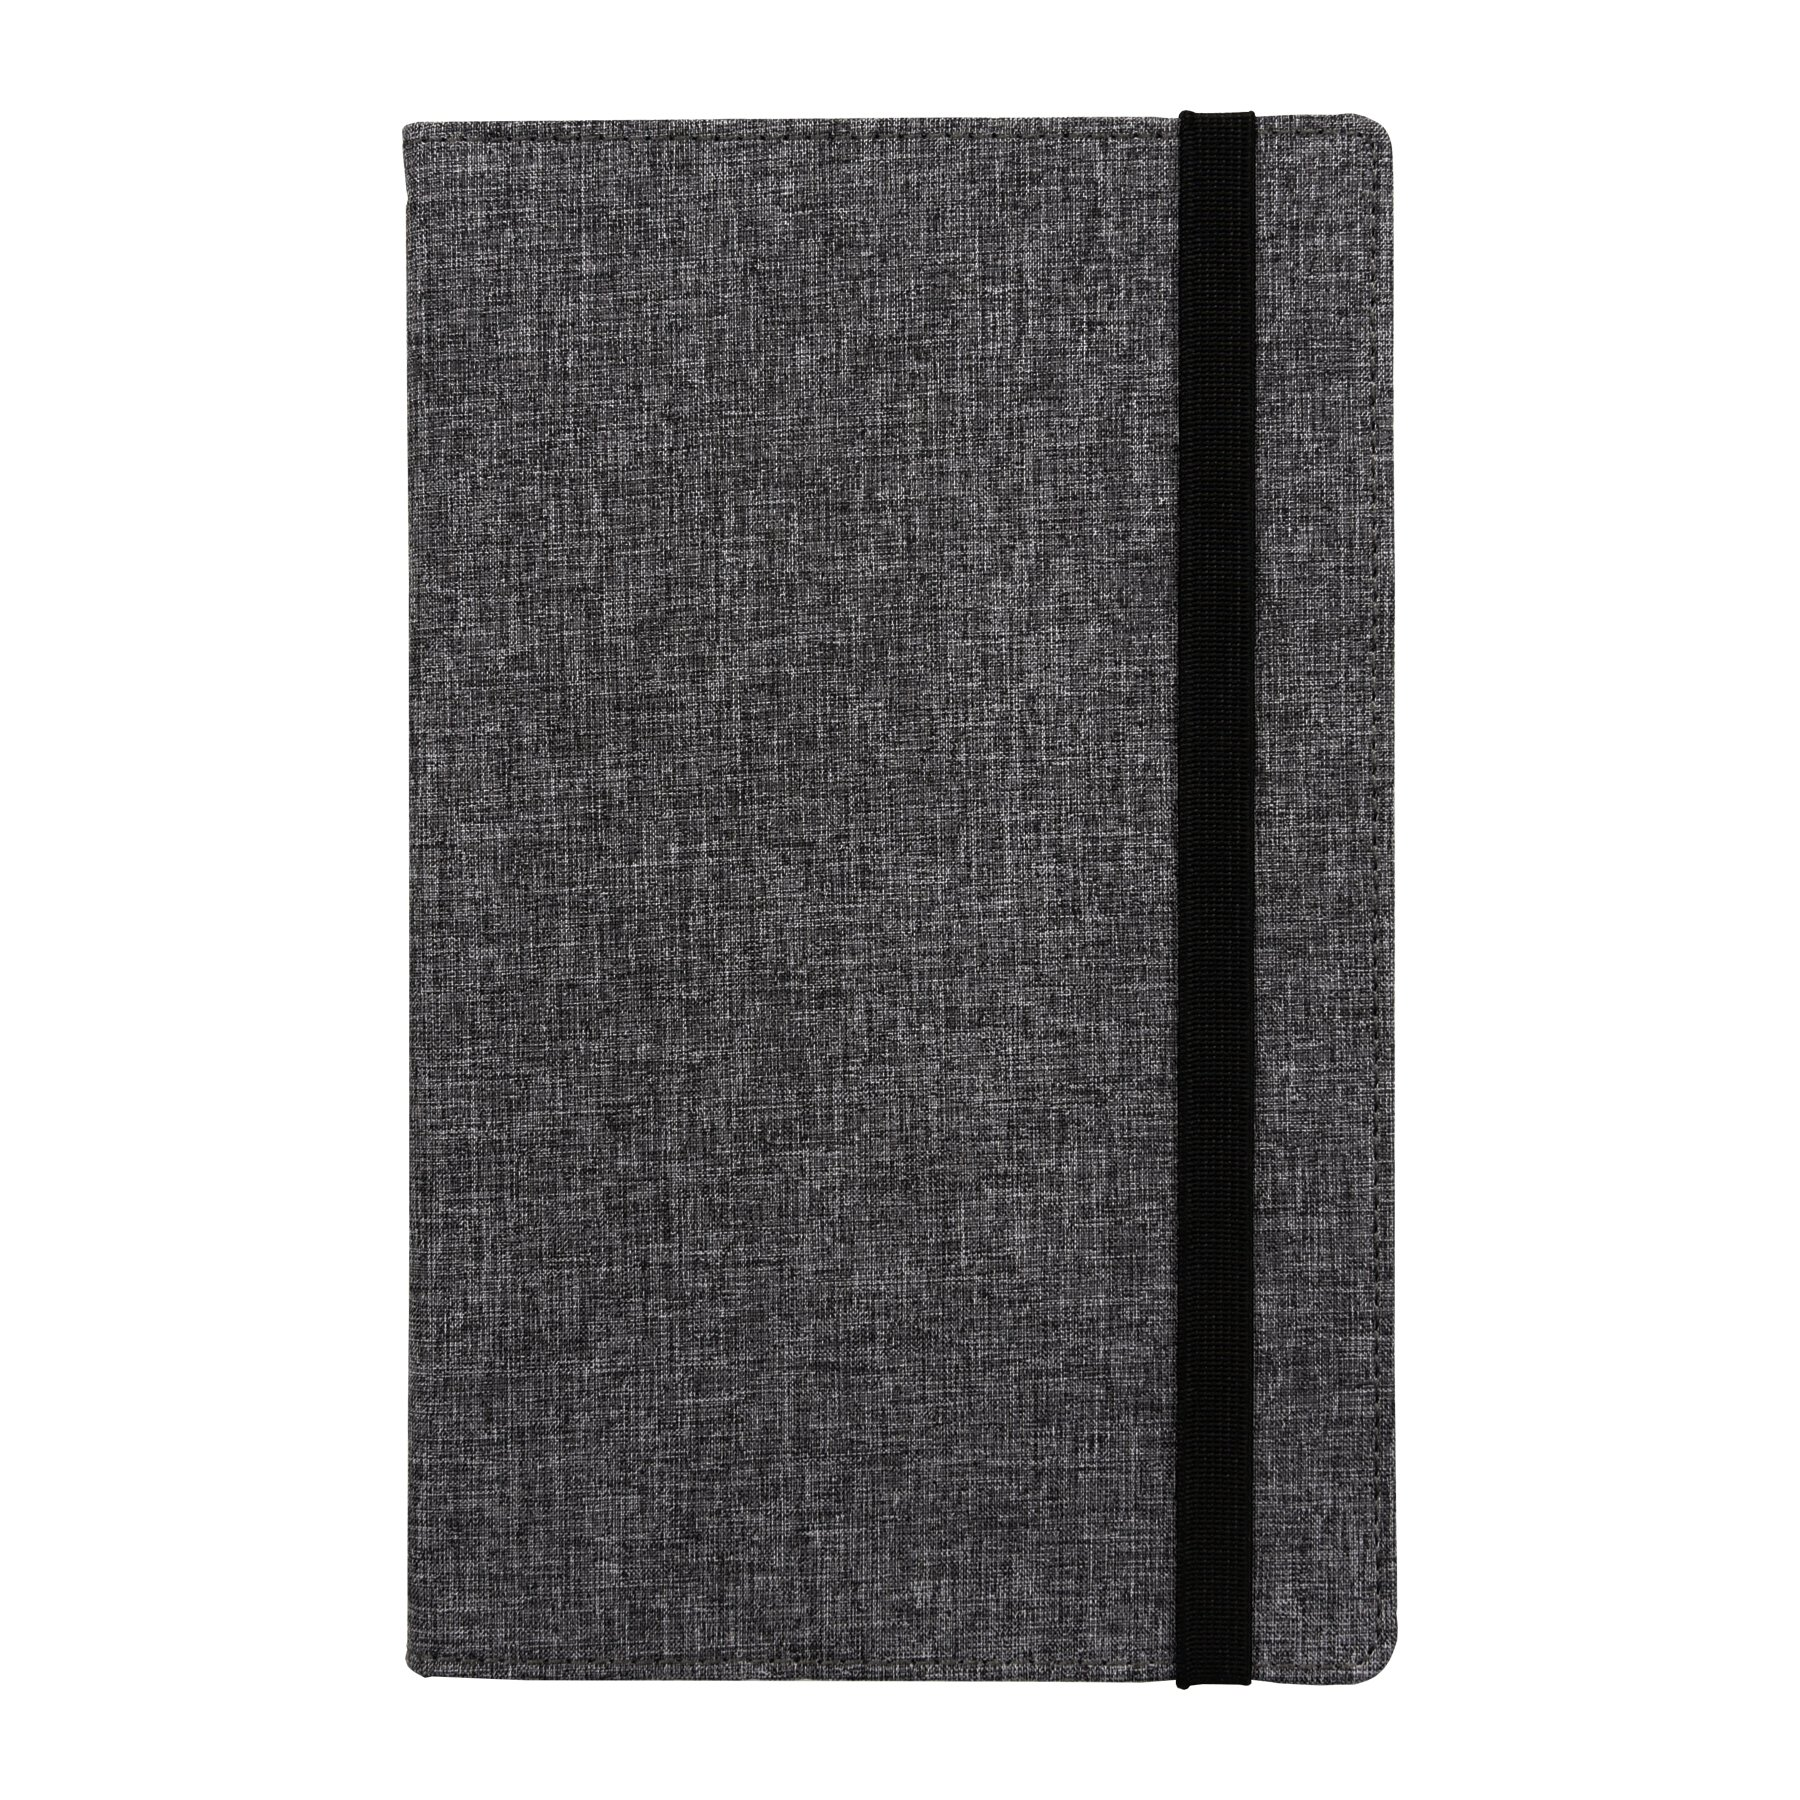 Samsill Suit Style Fashion Writing Notebook, Hardbound Cover, Classic Size, 5.25 Inch x 8.25 Inch, 120 Ruled Sheets (240 Pages), Gray with Black Elastic Band (Diary, Journal)